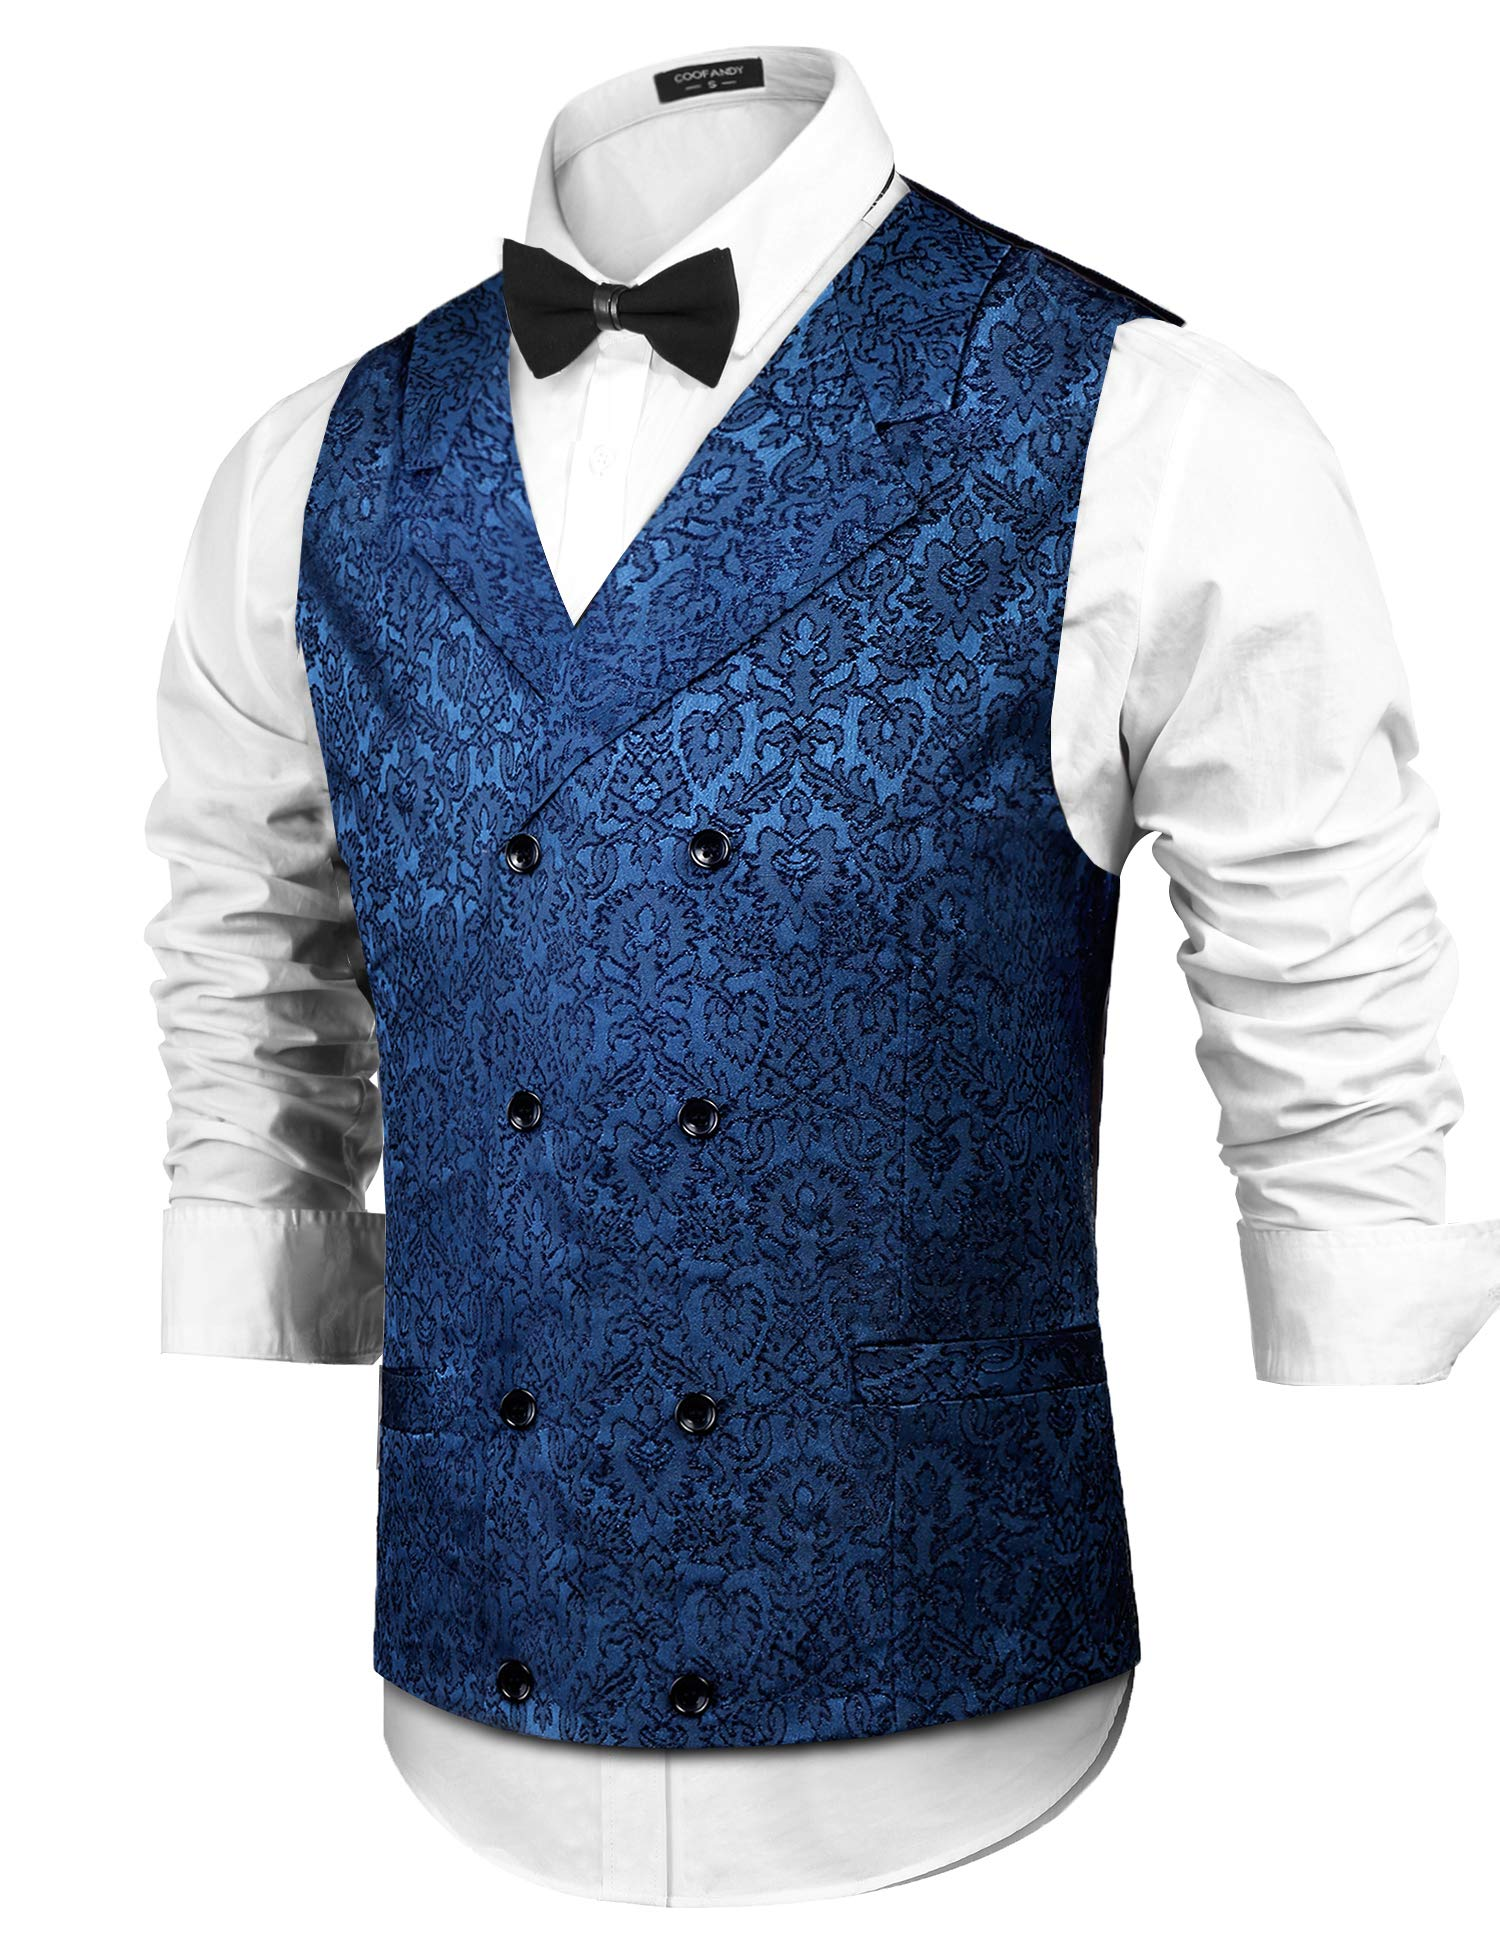 COOFANDY Mens Victorian Vest Steampunk Double Breasted Suit Vest Slim Fit Brocade Paisley Floral Waistcoat 3